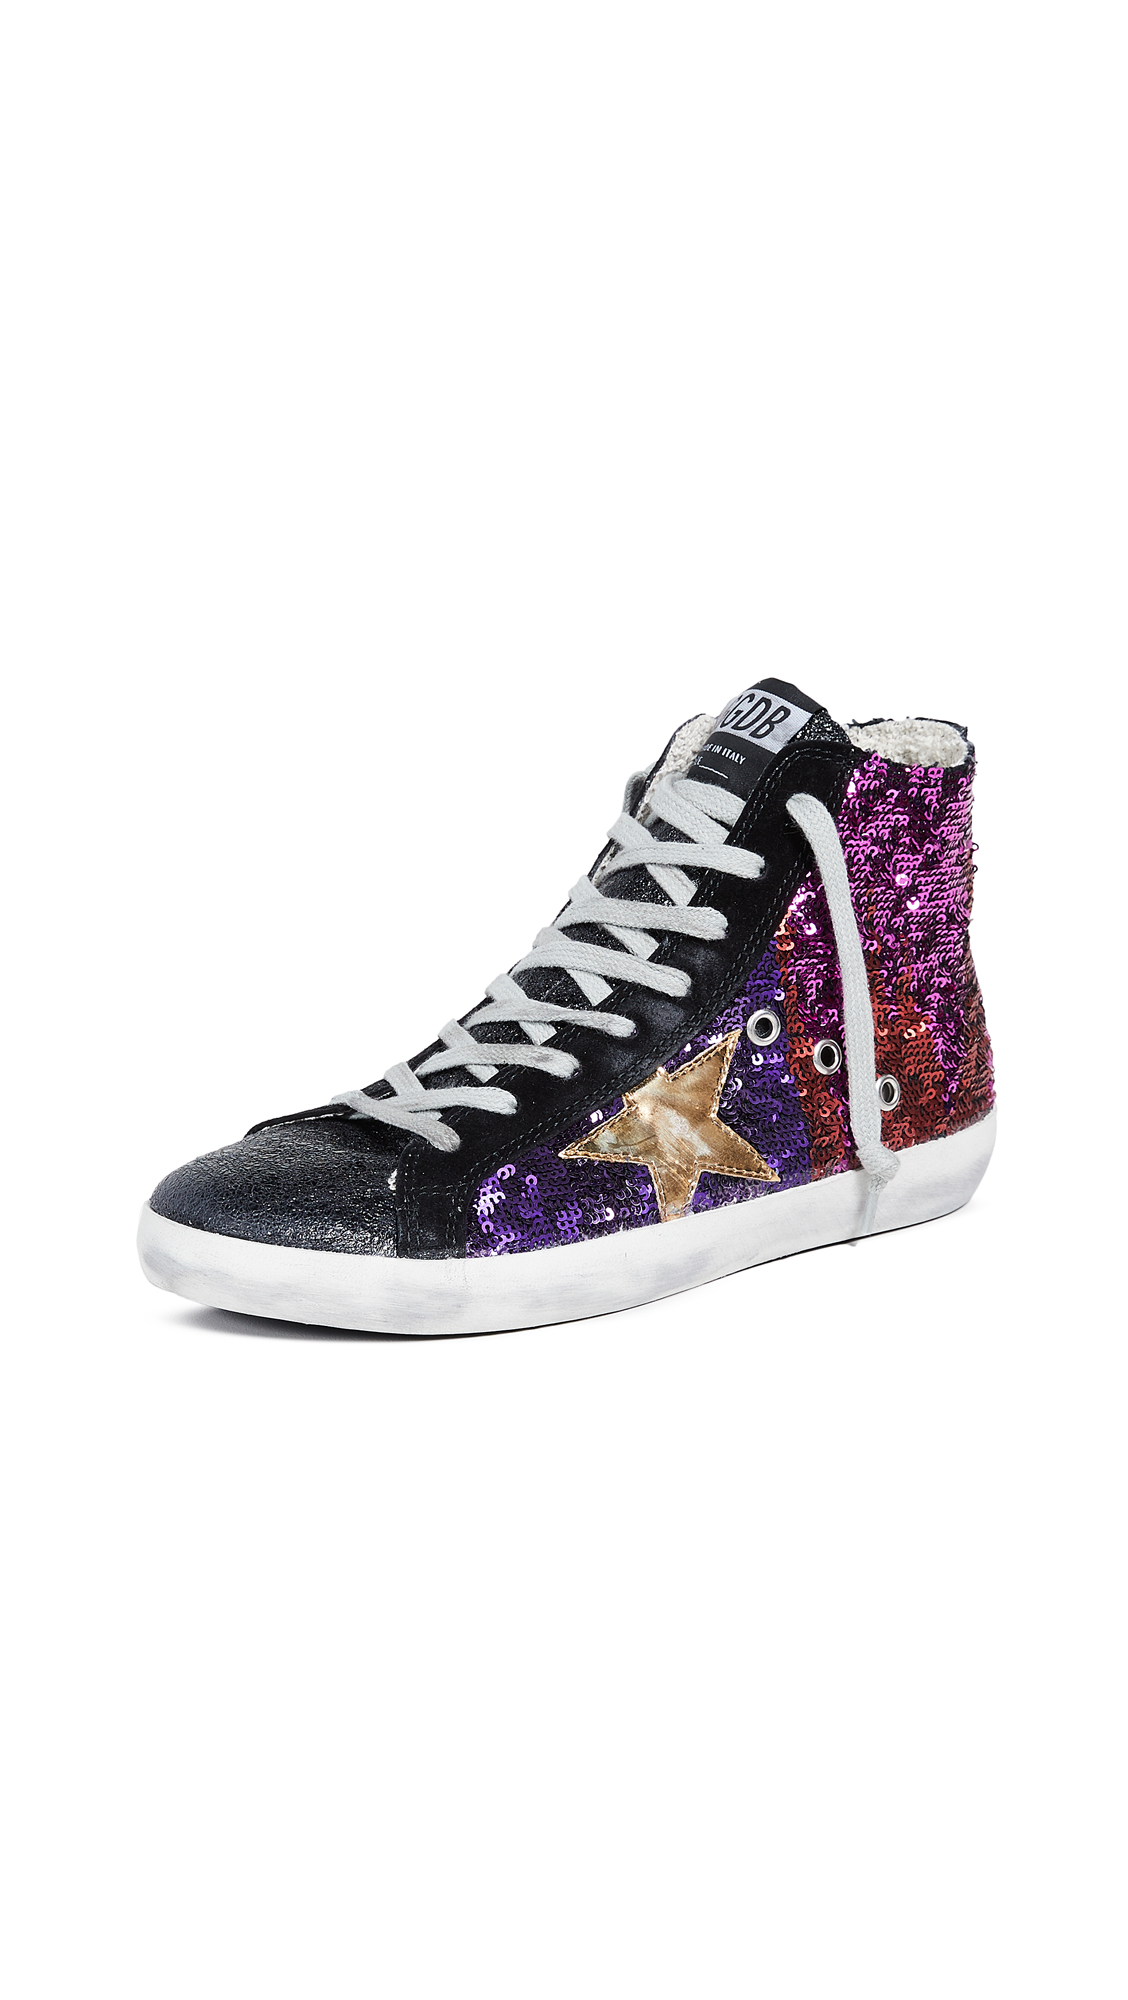 Golden Goose Francy Sneakers - Camelion/Gold Star